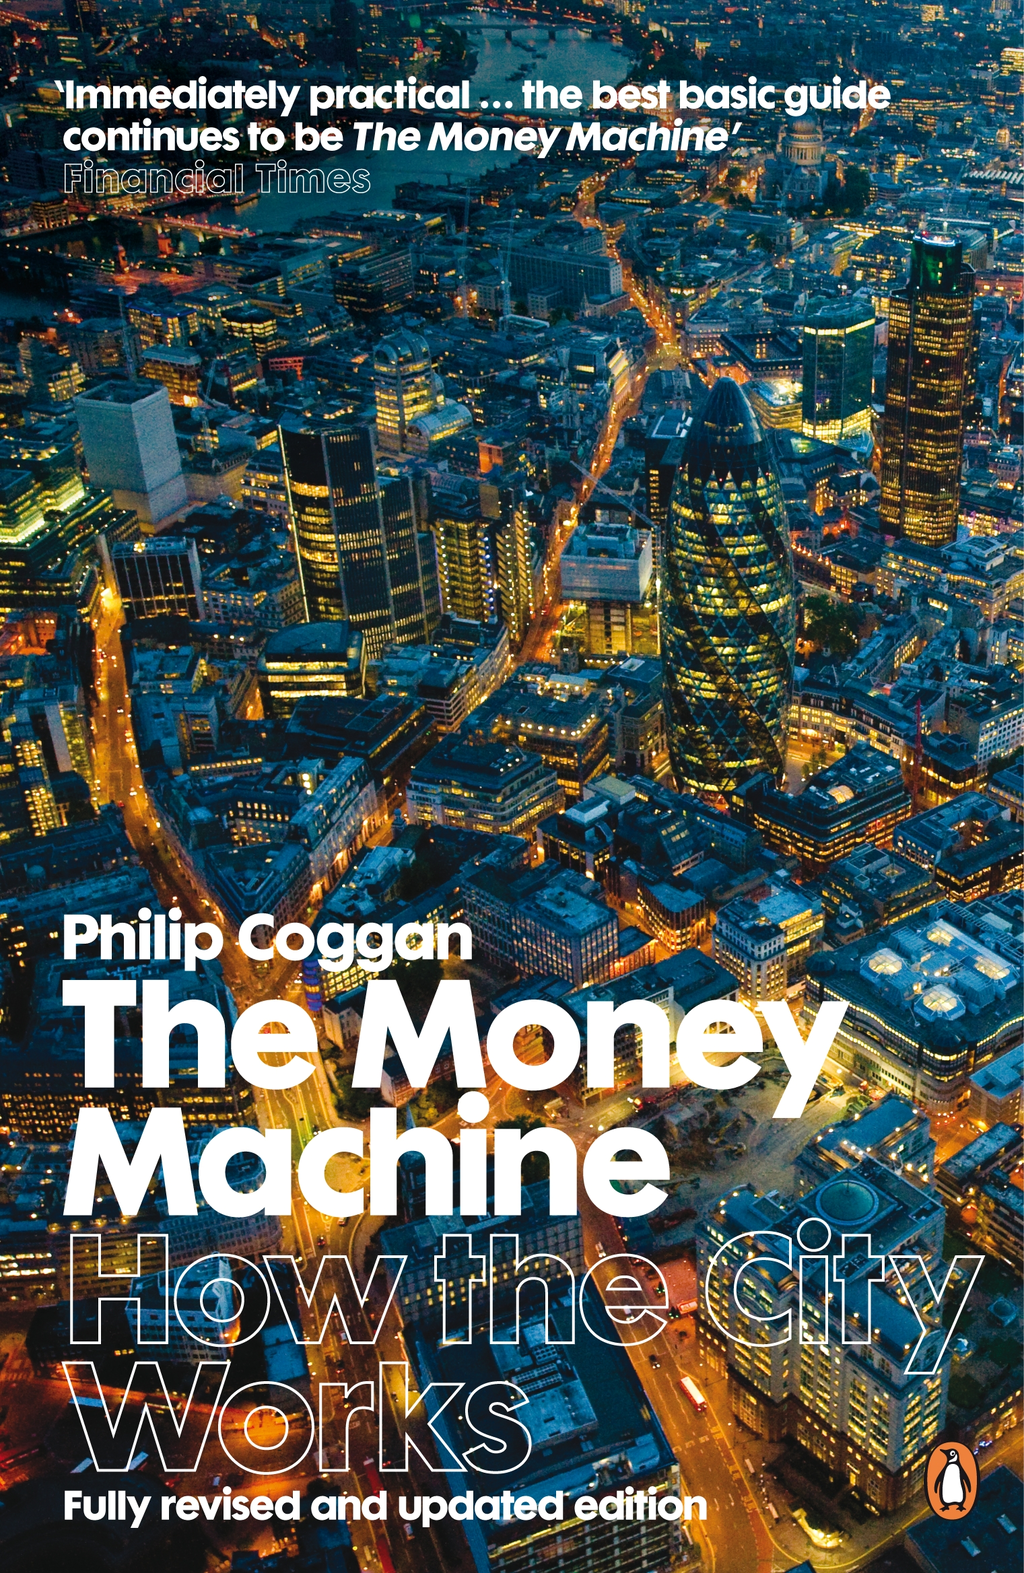 The Money Machine How the City Works